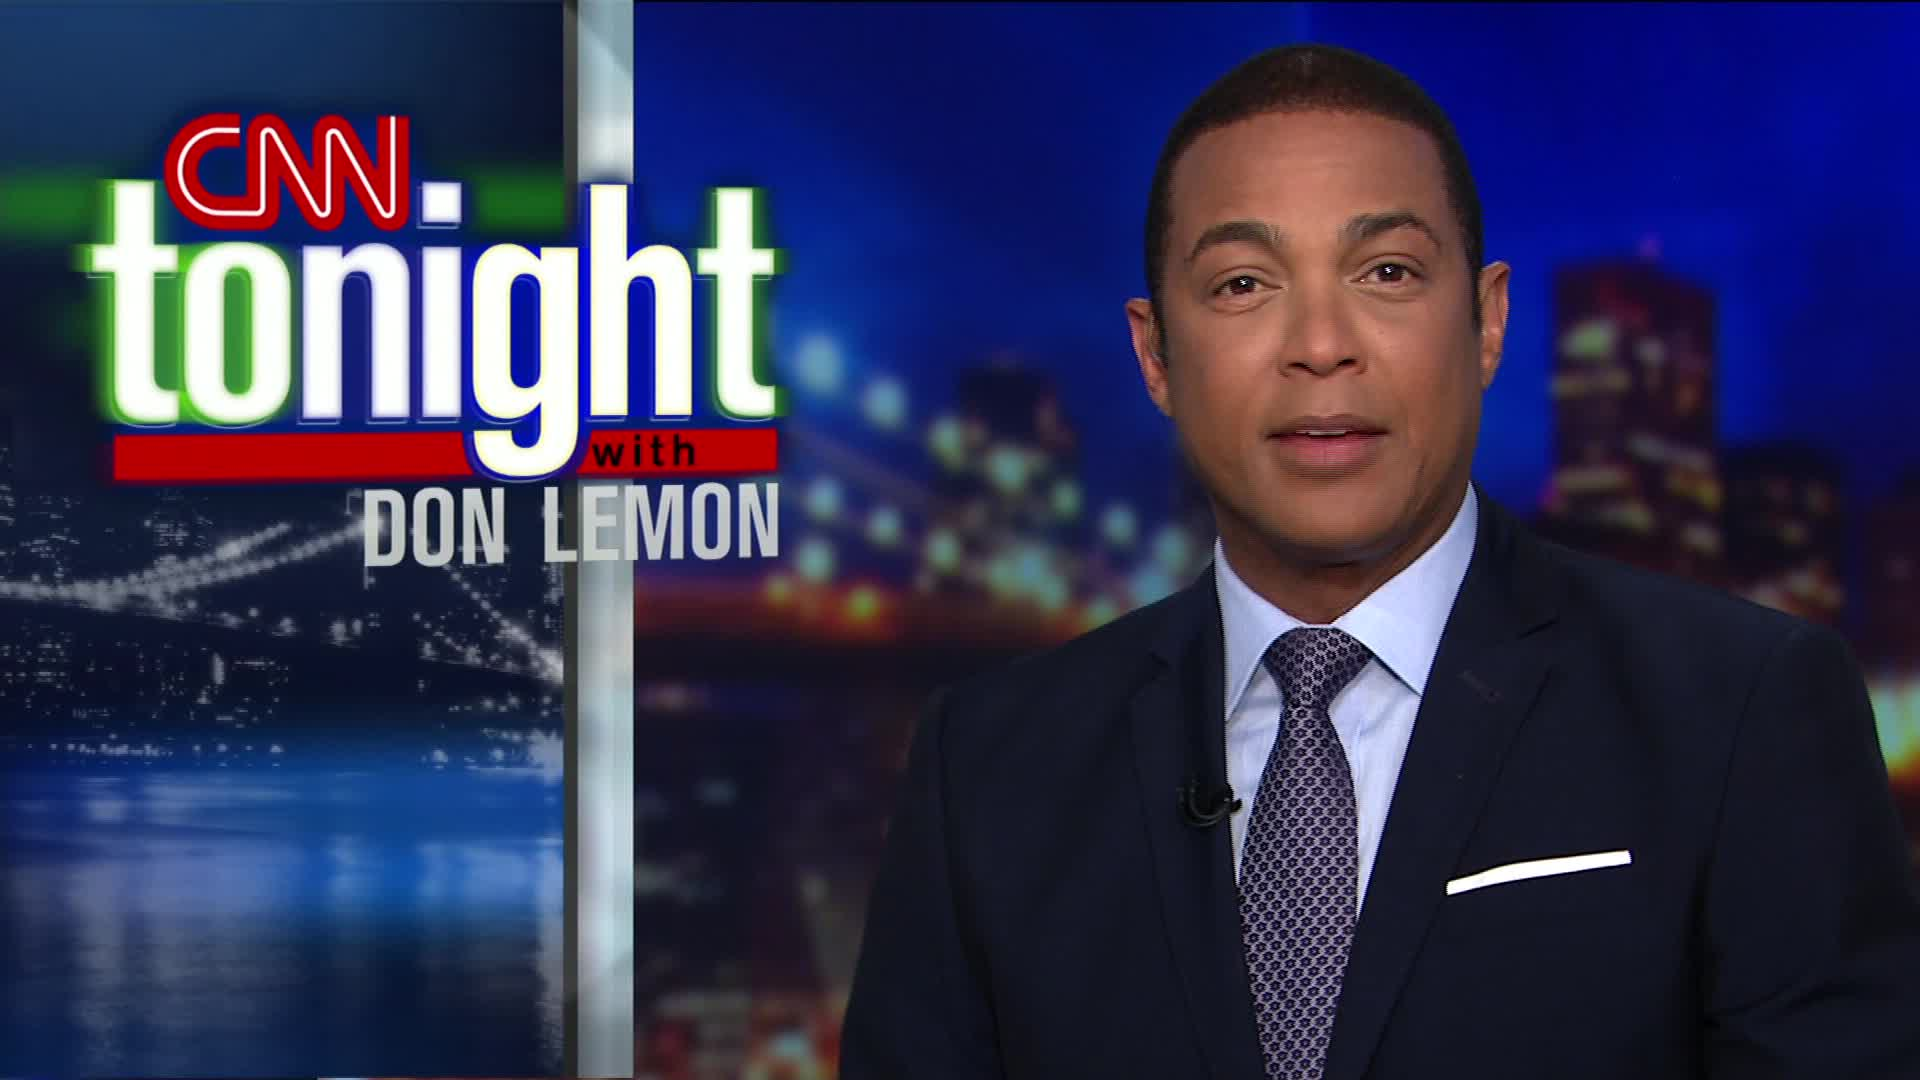 Don Lemon has hosted CNN tonight since 2014. In this position, he has elevated LGBTQ issues on a national stage.